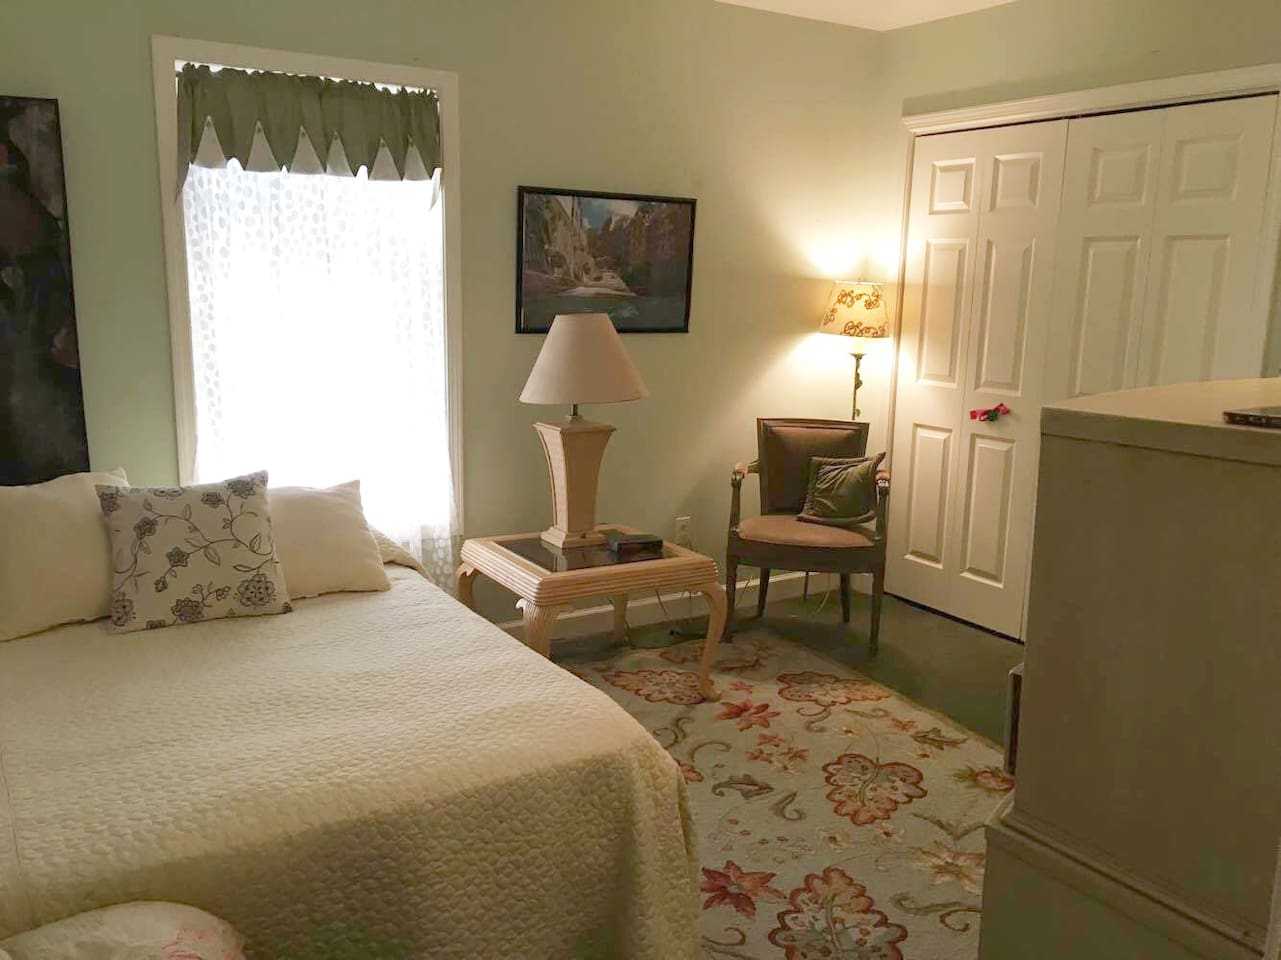 Private comfortable bedroom with a queen size bed.